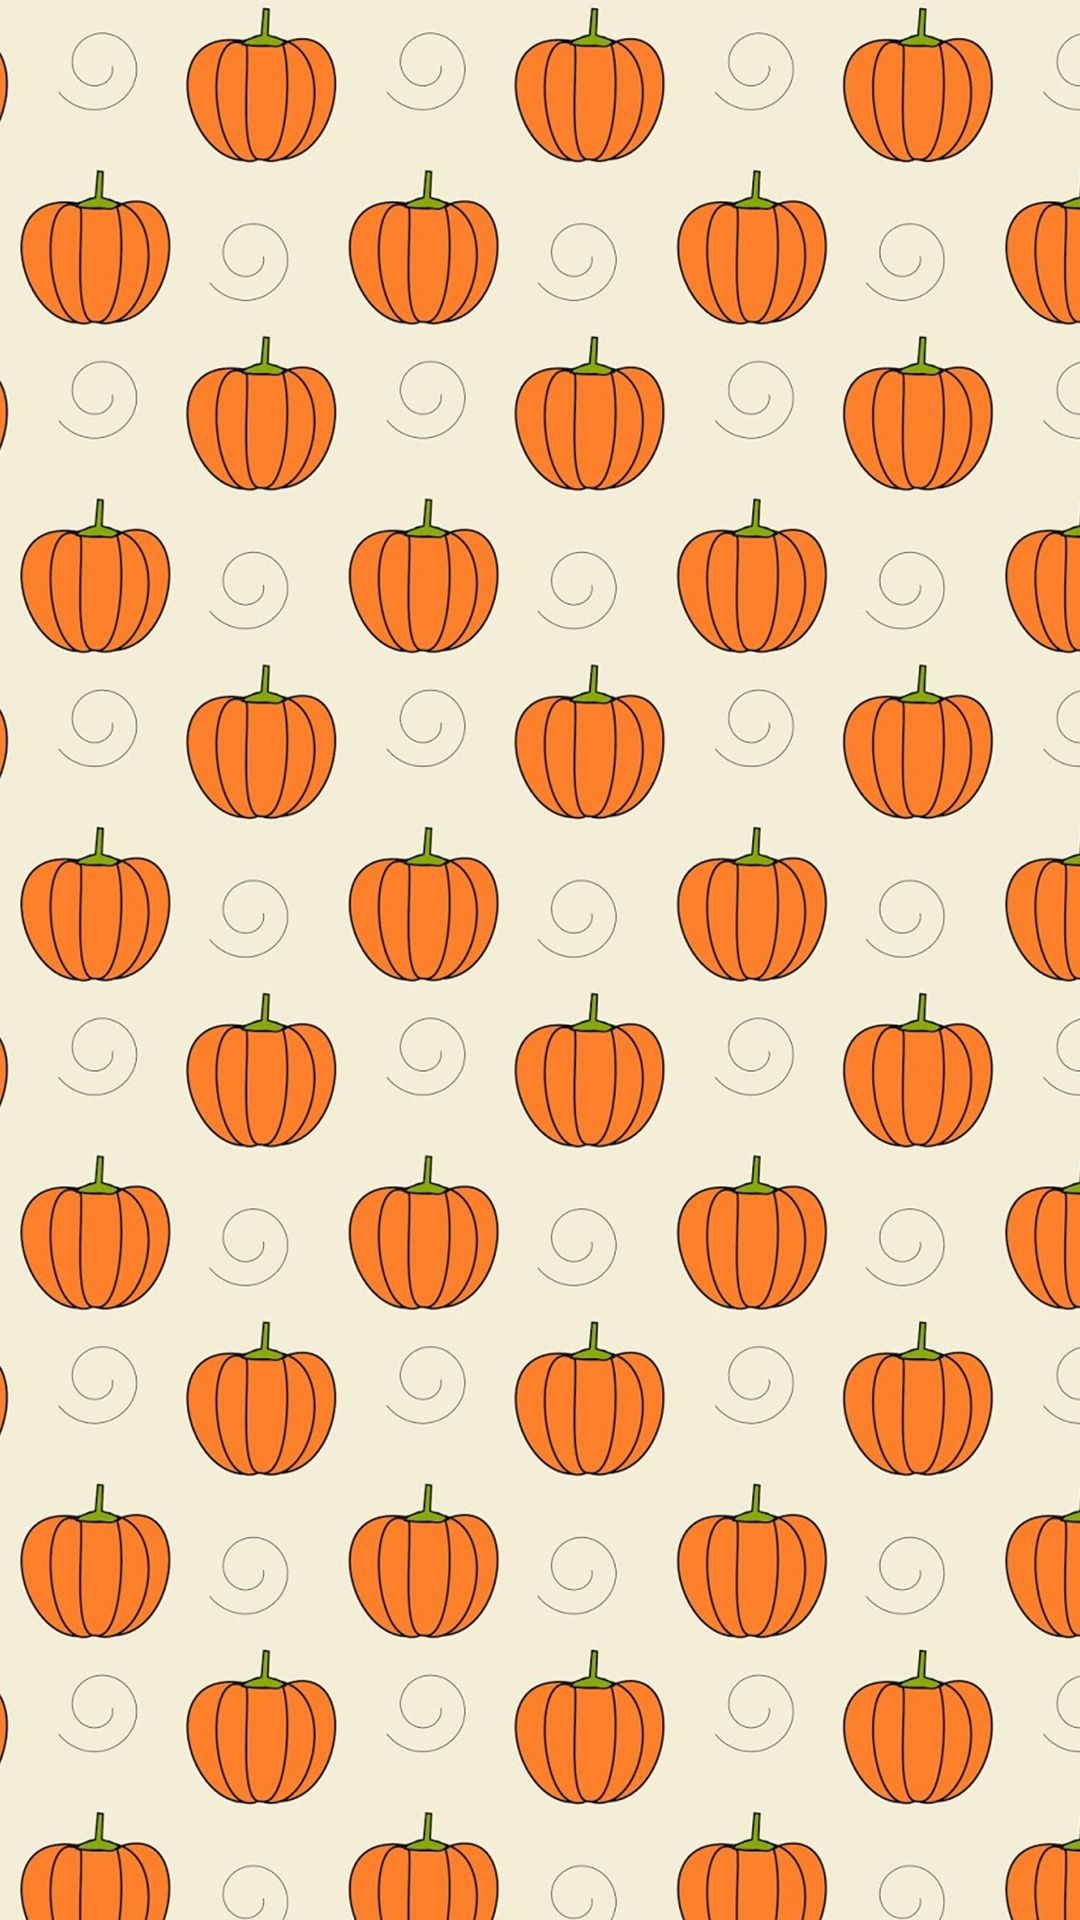 Pumpkins - Tap to see more cute halloween wallpaper! | @mobile9 ...